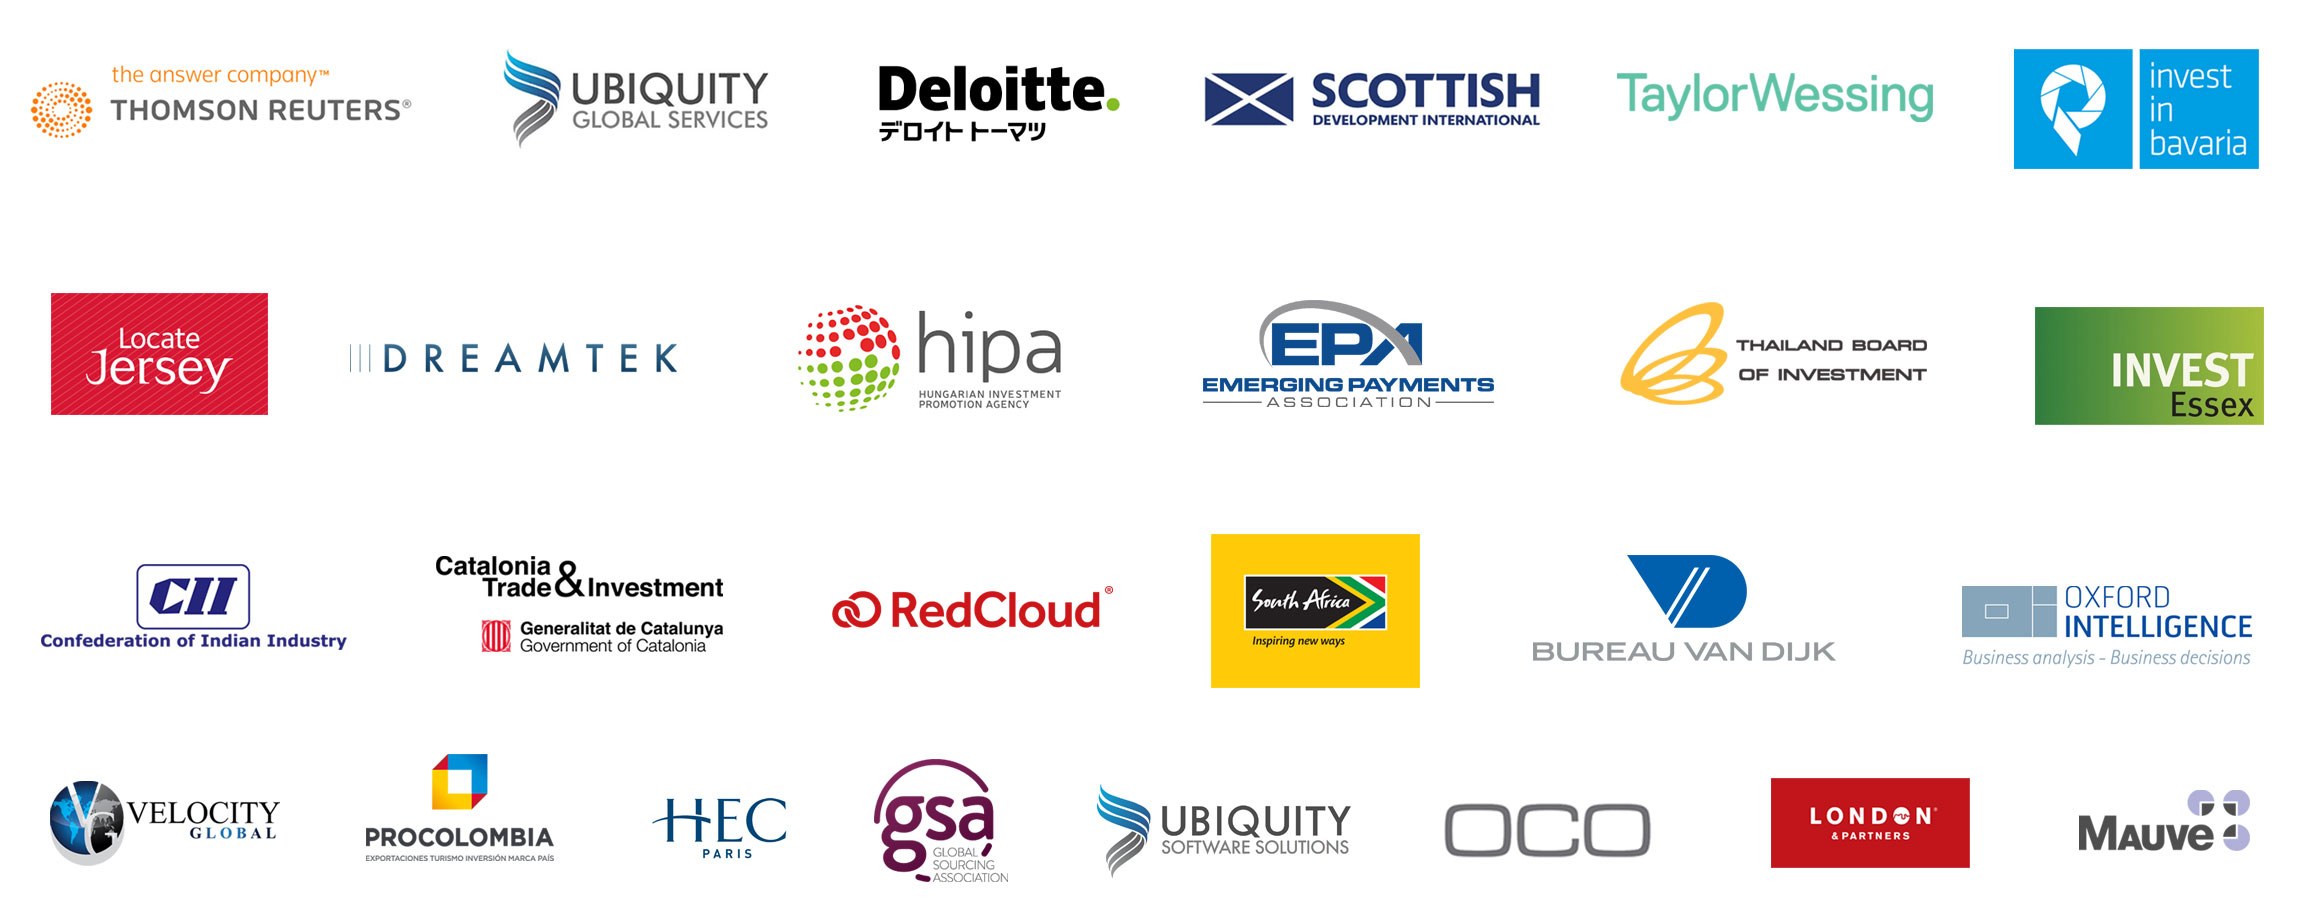 View all sponsors and exhibitors at the Brexit & Global Expansion Summit